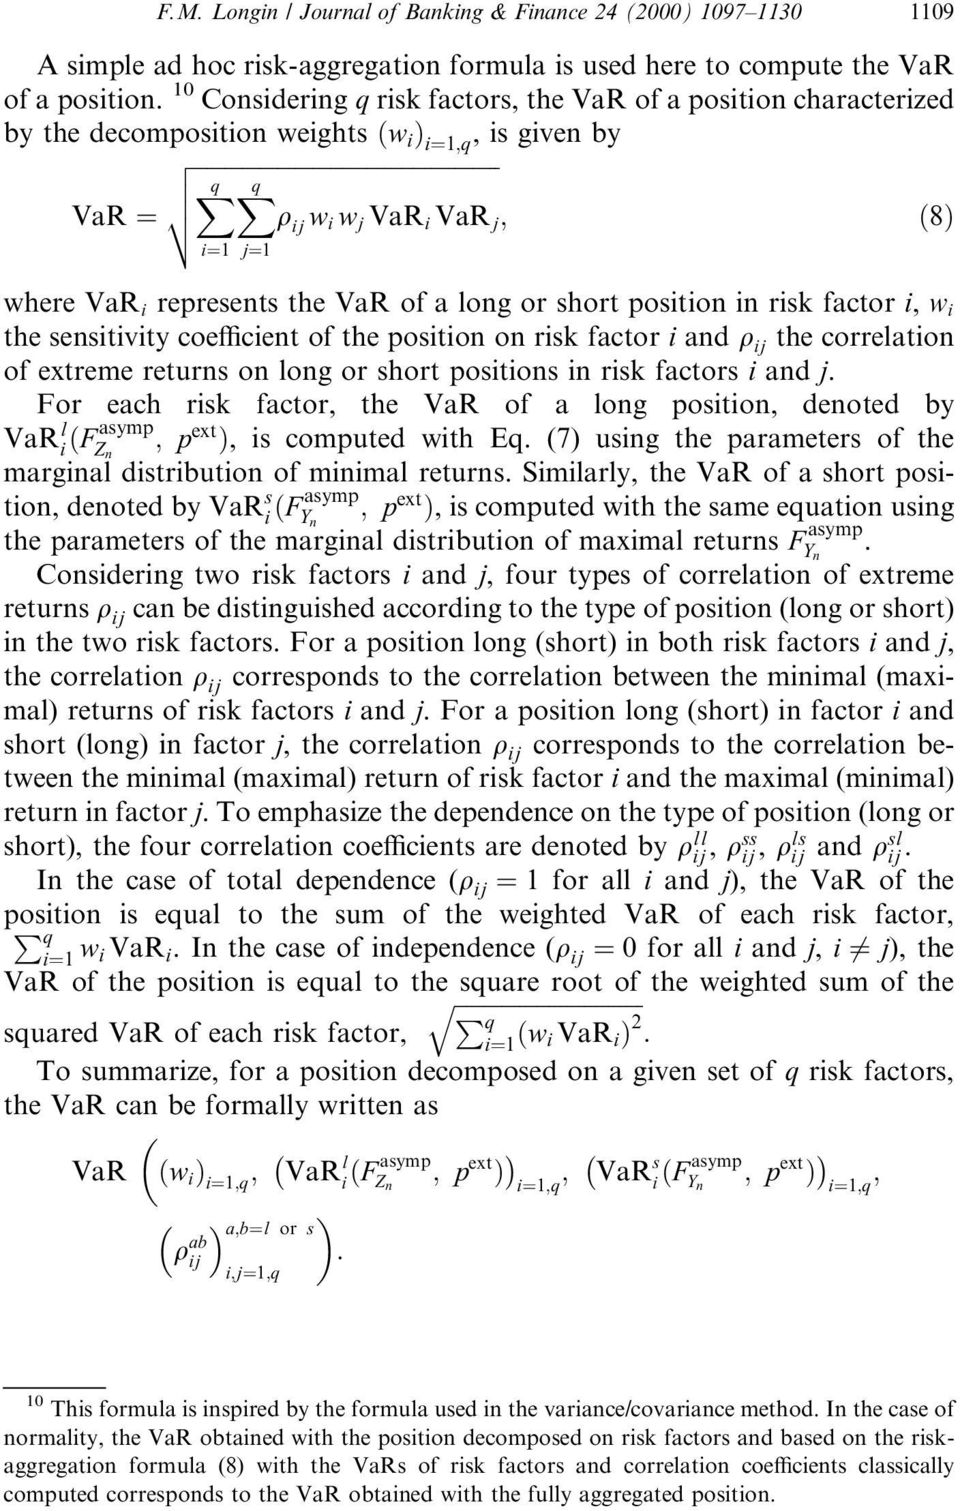 the VaR of a long or short position in risk factor i, w i the sensitivity coe cient of the position on risk factor i and q ij the correlation of extreme returns on long or short positions in risk